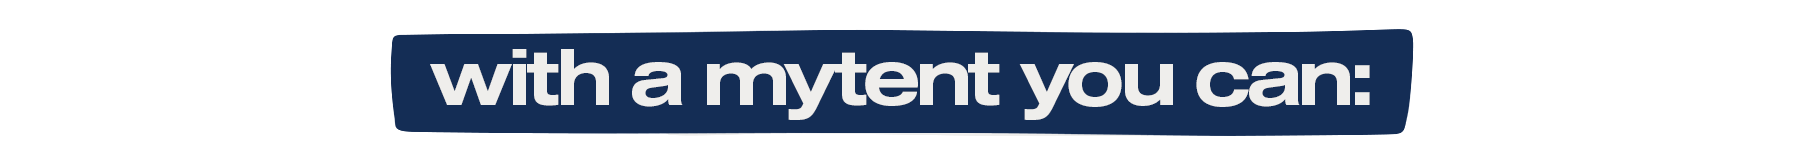 MYW_mainTitles_v04_withAMytent.png